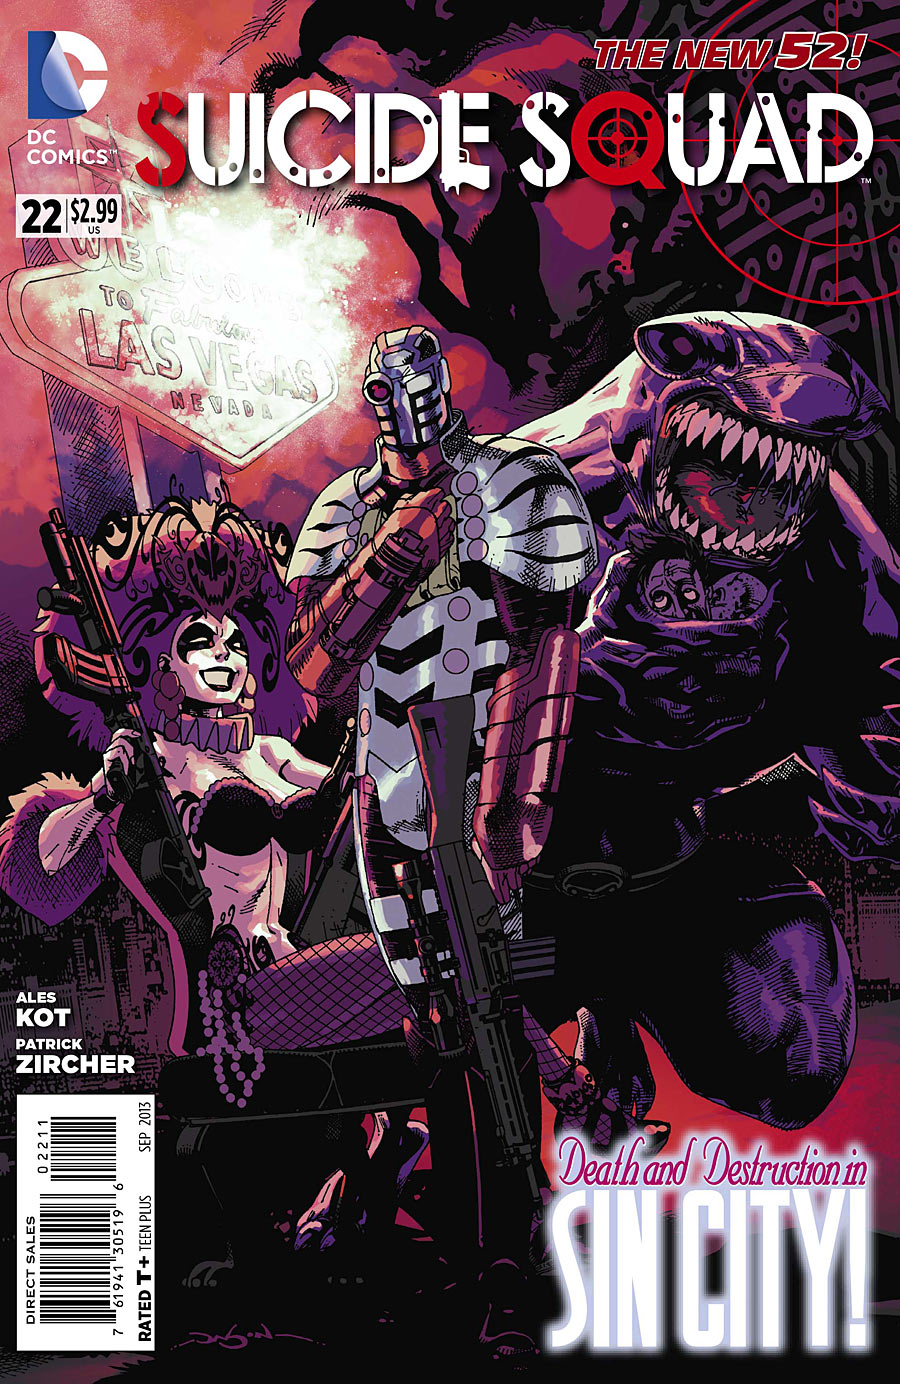 Suicide Squad (The New 52) #22